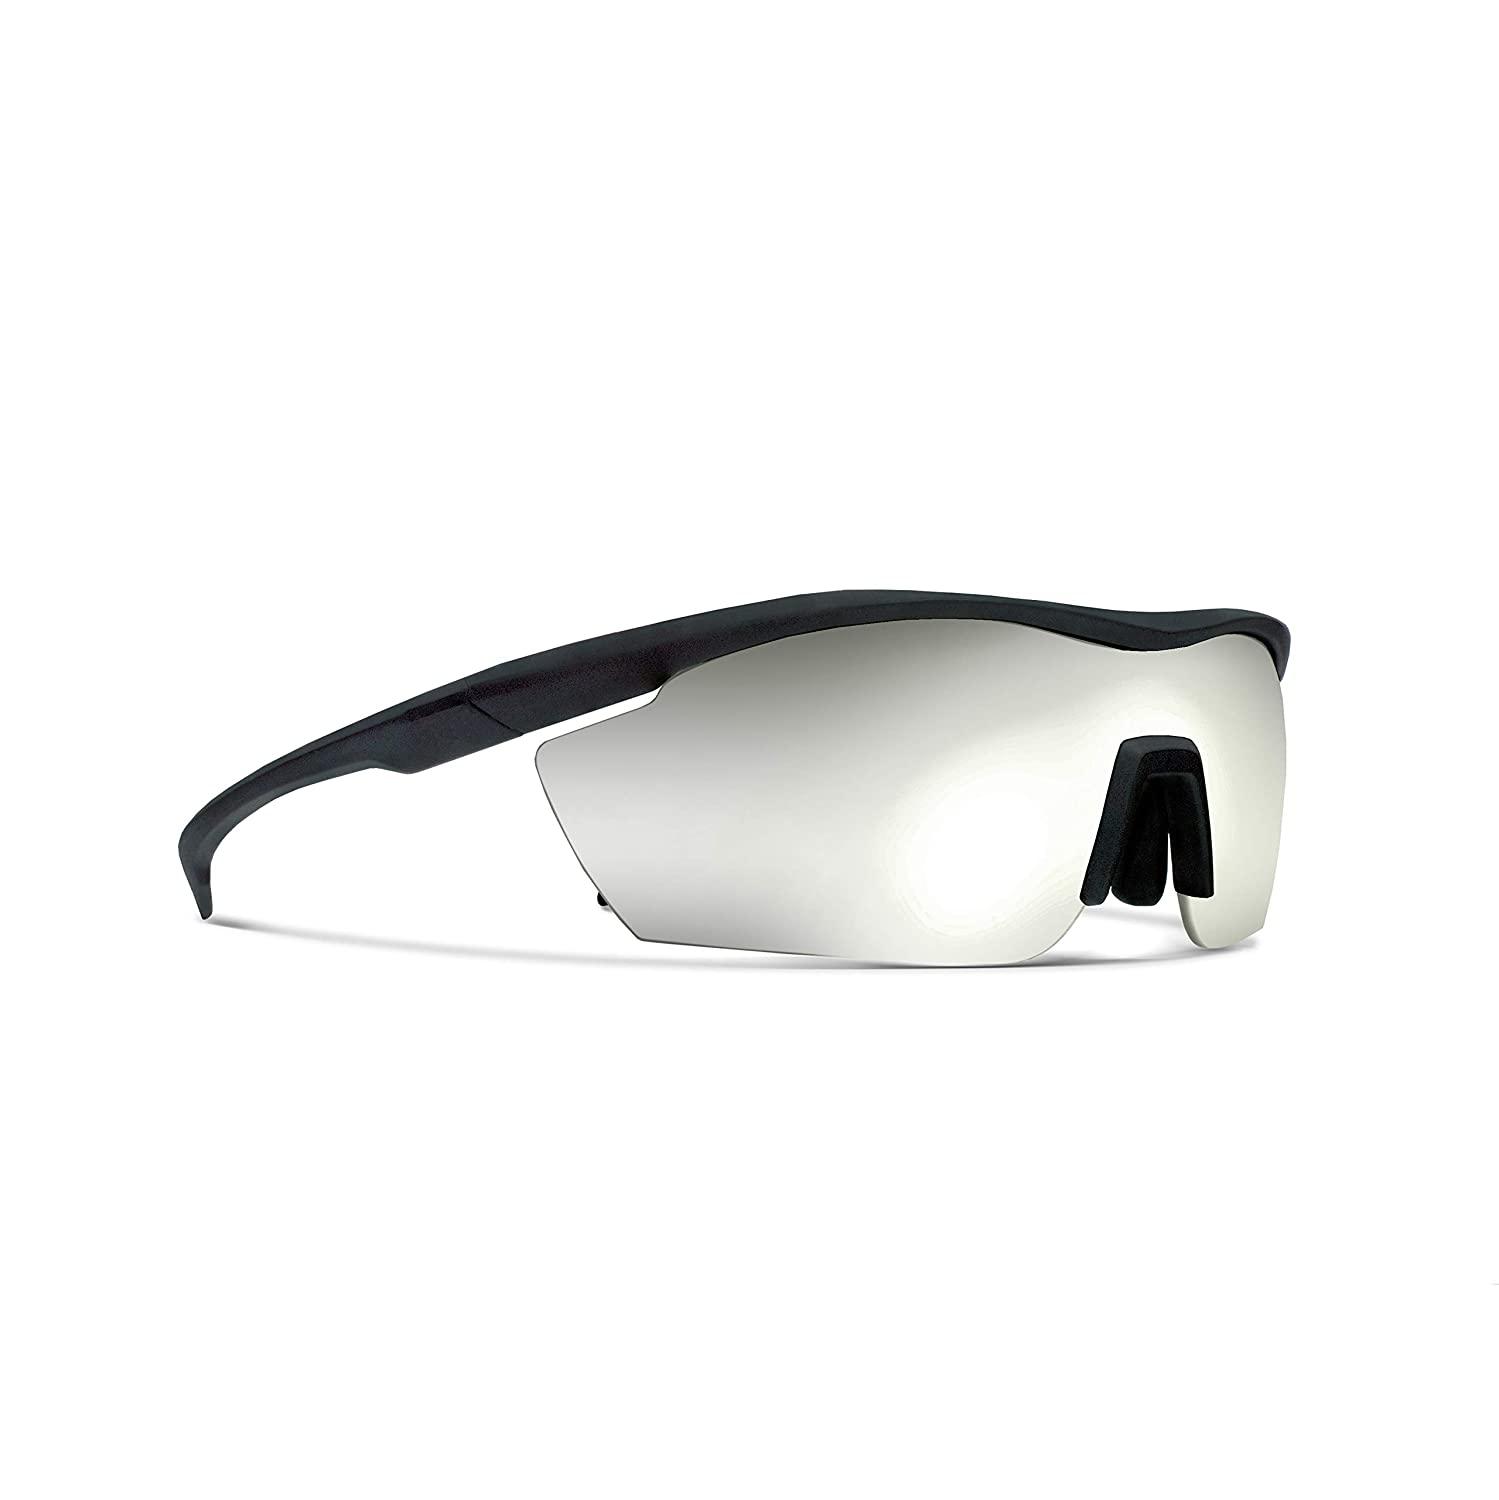 Siraya Gamma Matt Black Road Cycling//Fishing Sunglasses with ZEISS P7020M Super Silver Mirrored Lenses